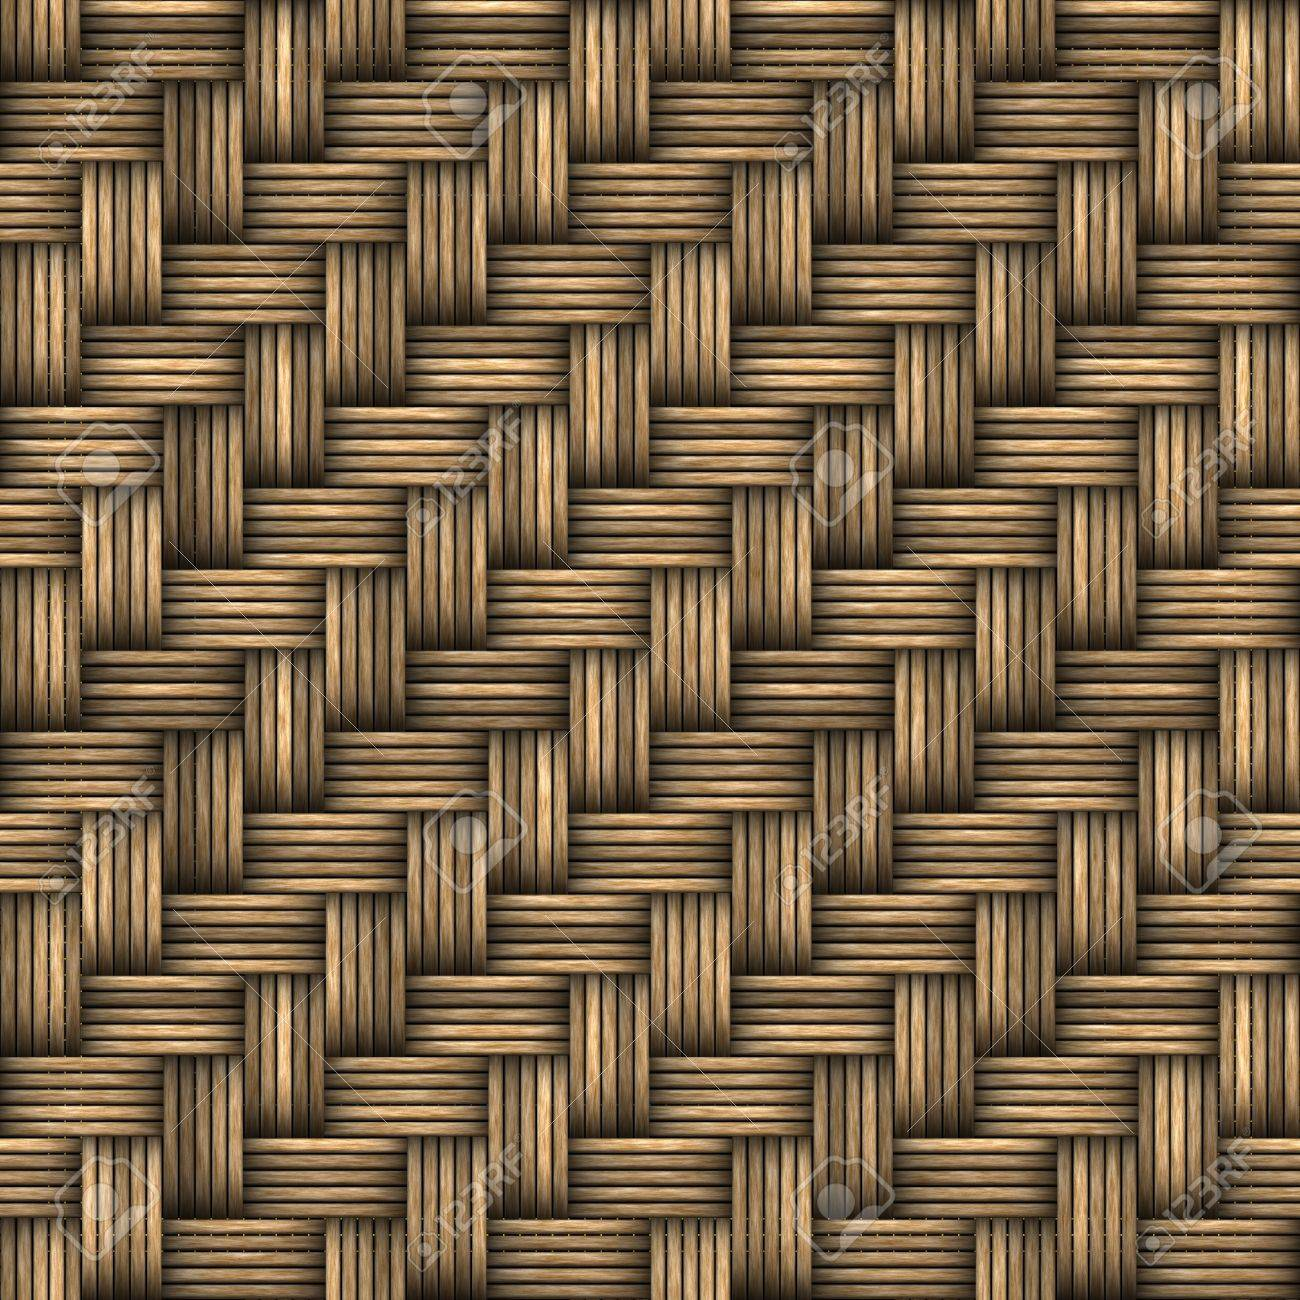 A seamless 3D wicker basket or furniture texture that tiles as a pattern in any direction. Stock Photo - 6894313